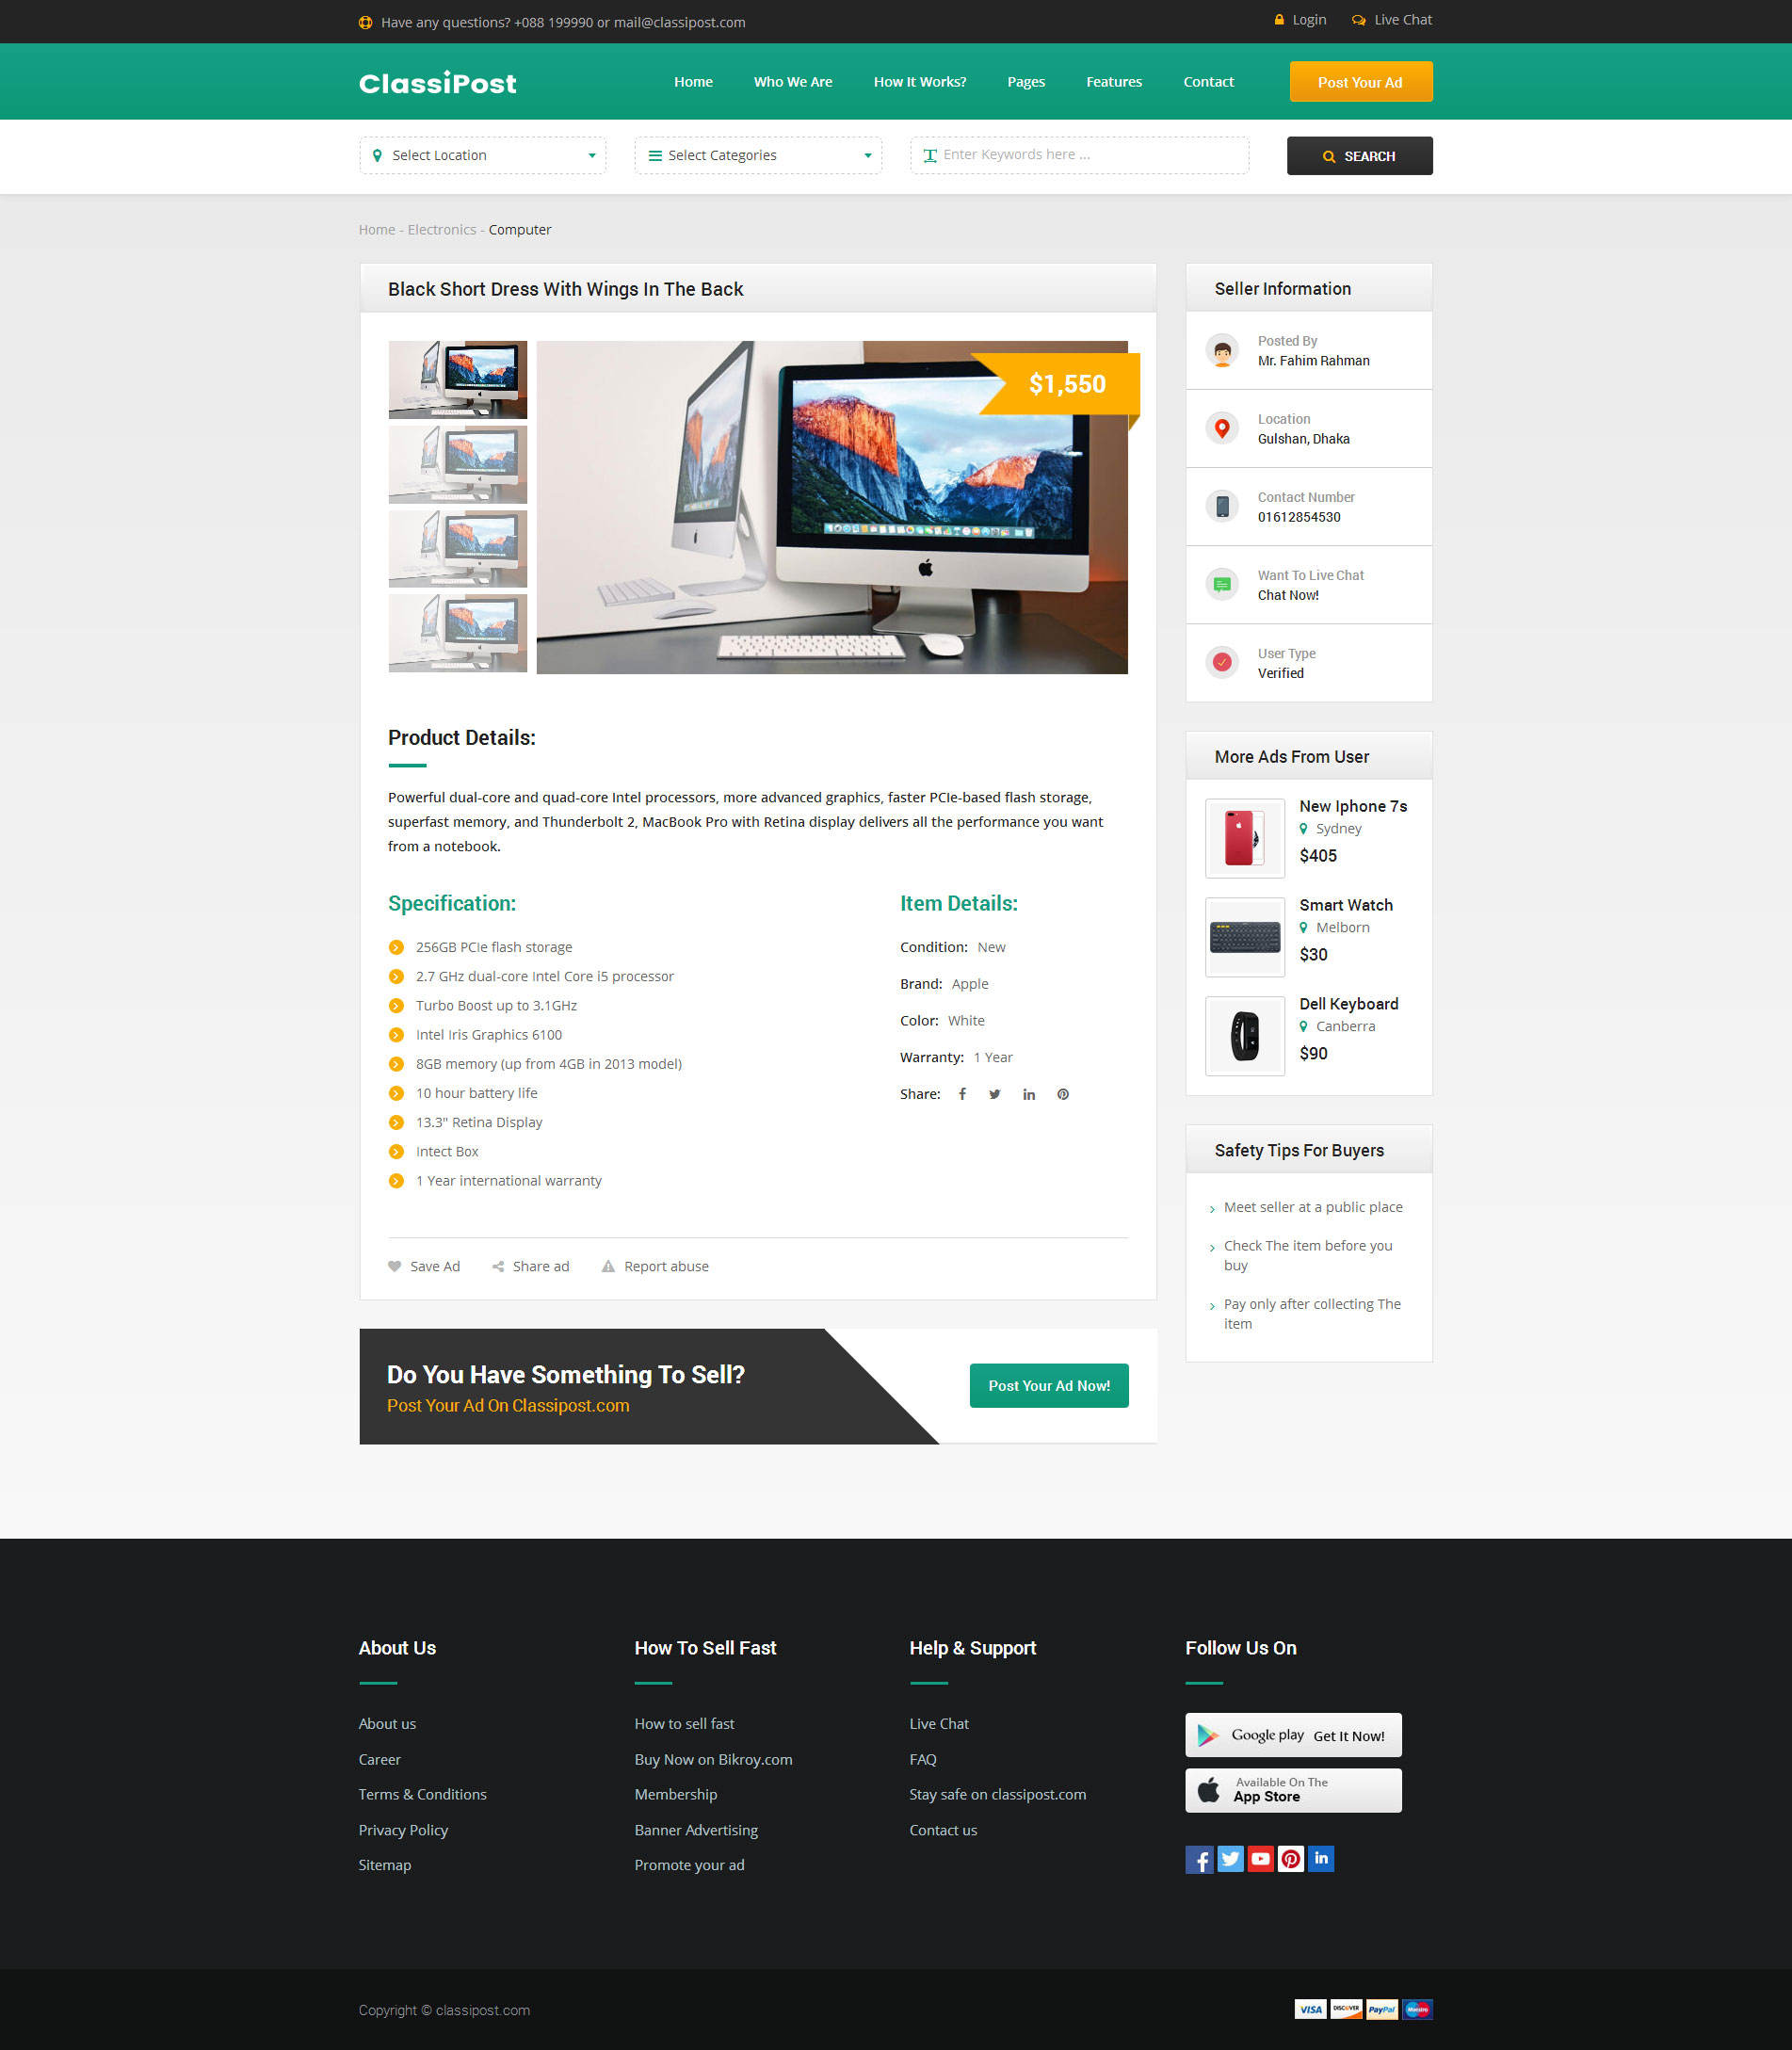 ClassiPost Classified Ads HTML Template By RadiusTheme ThemeForest - Product ad template